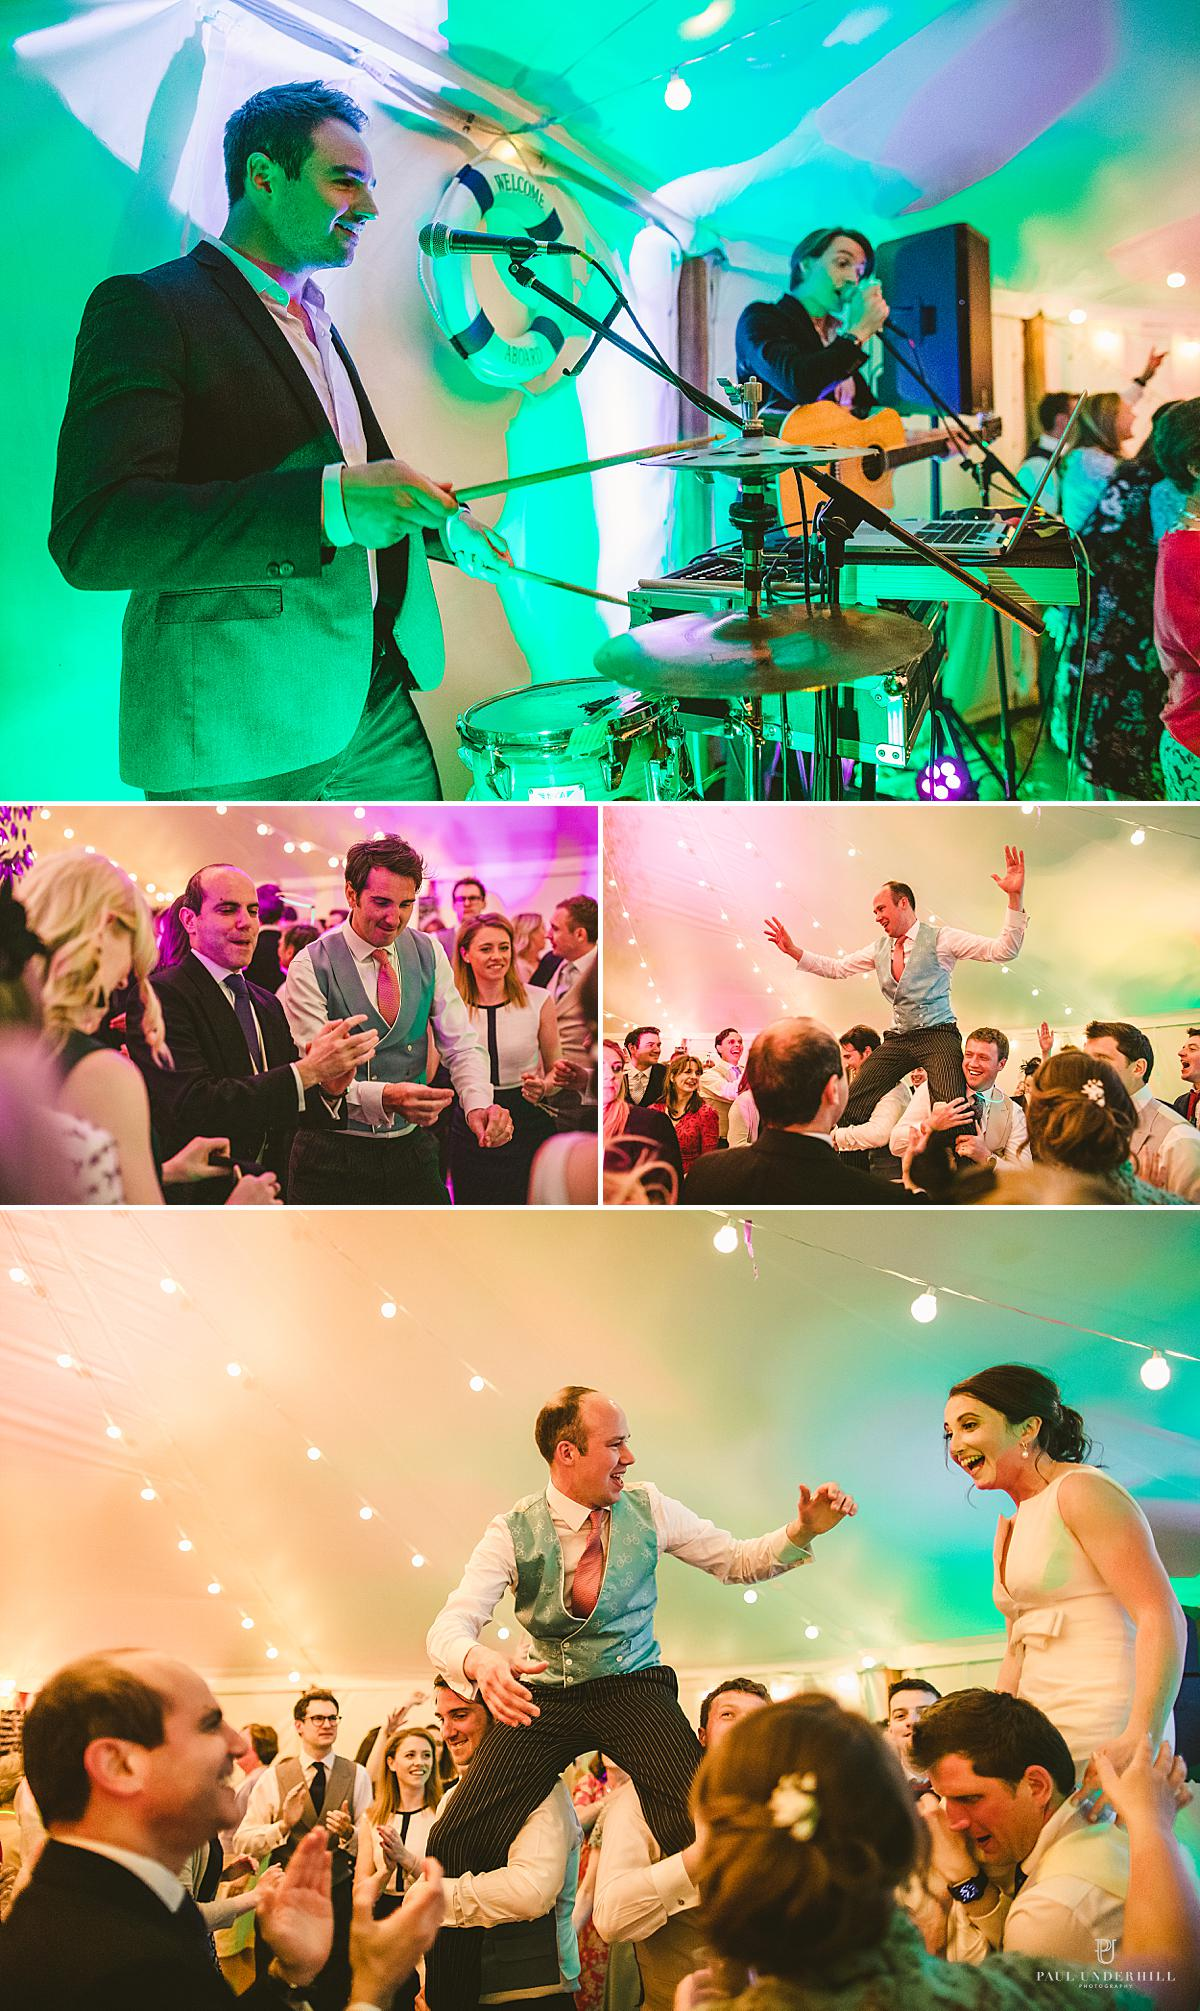 Reportage wedding photography party antics